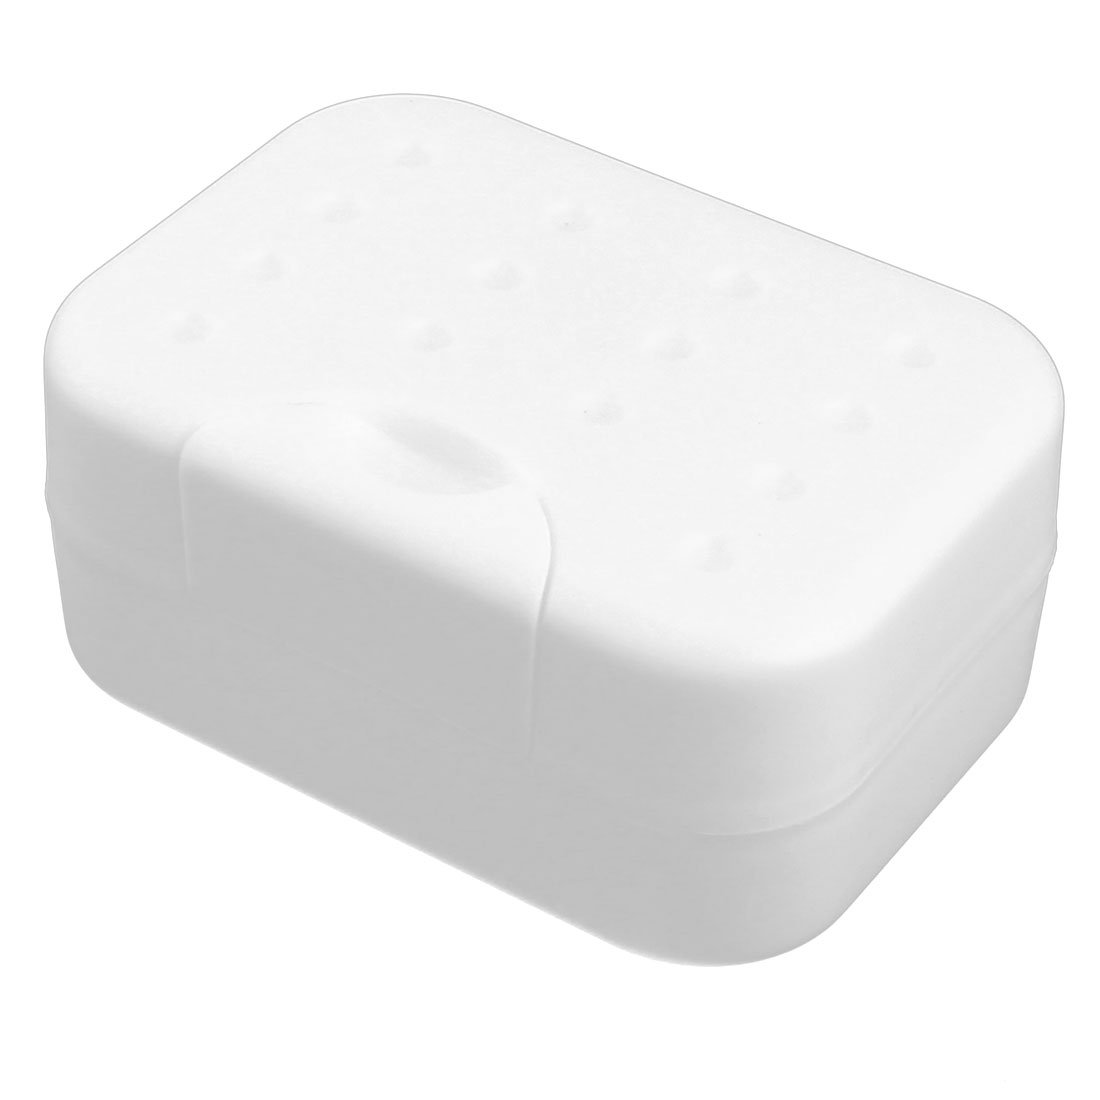 uxcell Plastic Household Travel Rectangle Shower Soap Holder Box Dish Container White a16102600ux0373